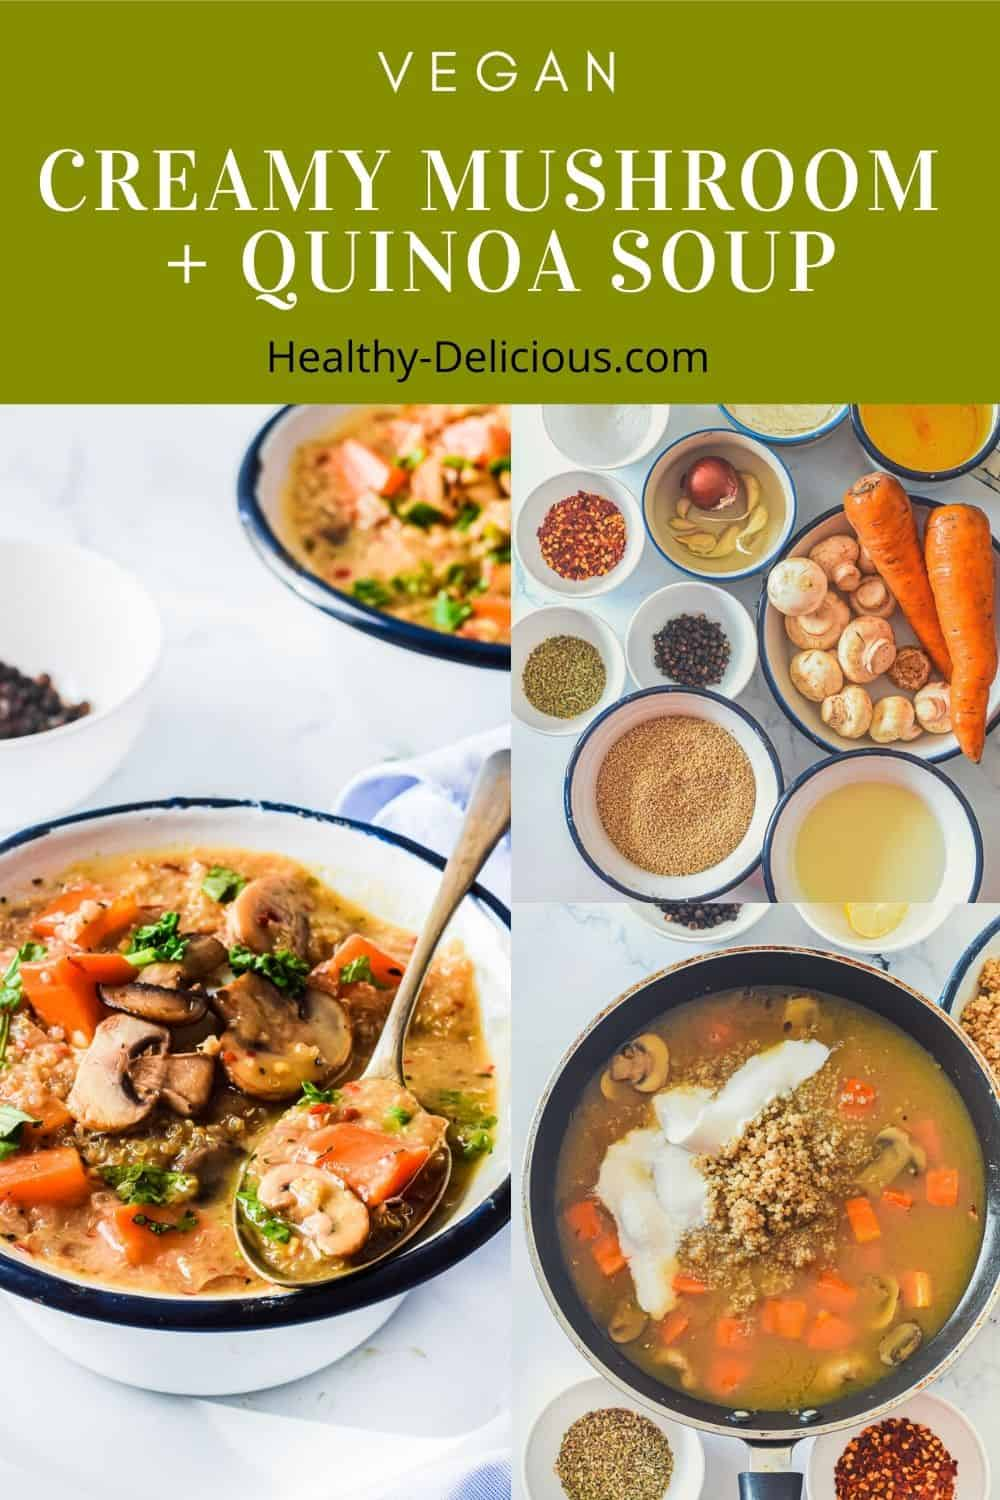 Creamy Mushroom + Quinoa Soup is a cozy winter meal. Coconut milk adds creaminess while keeping this delicious vegan mushroom soup recipe dairy free. via @HealthyDelish